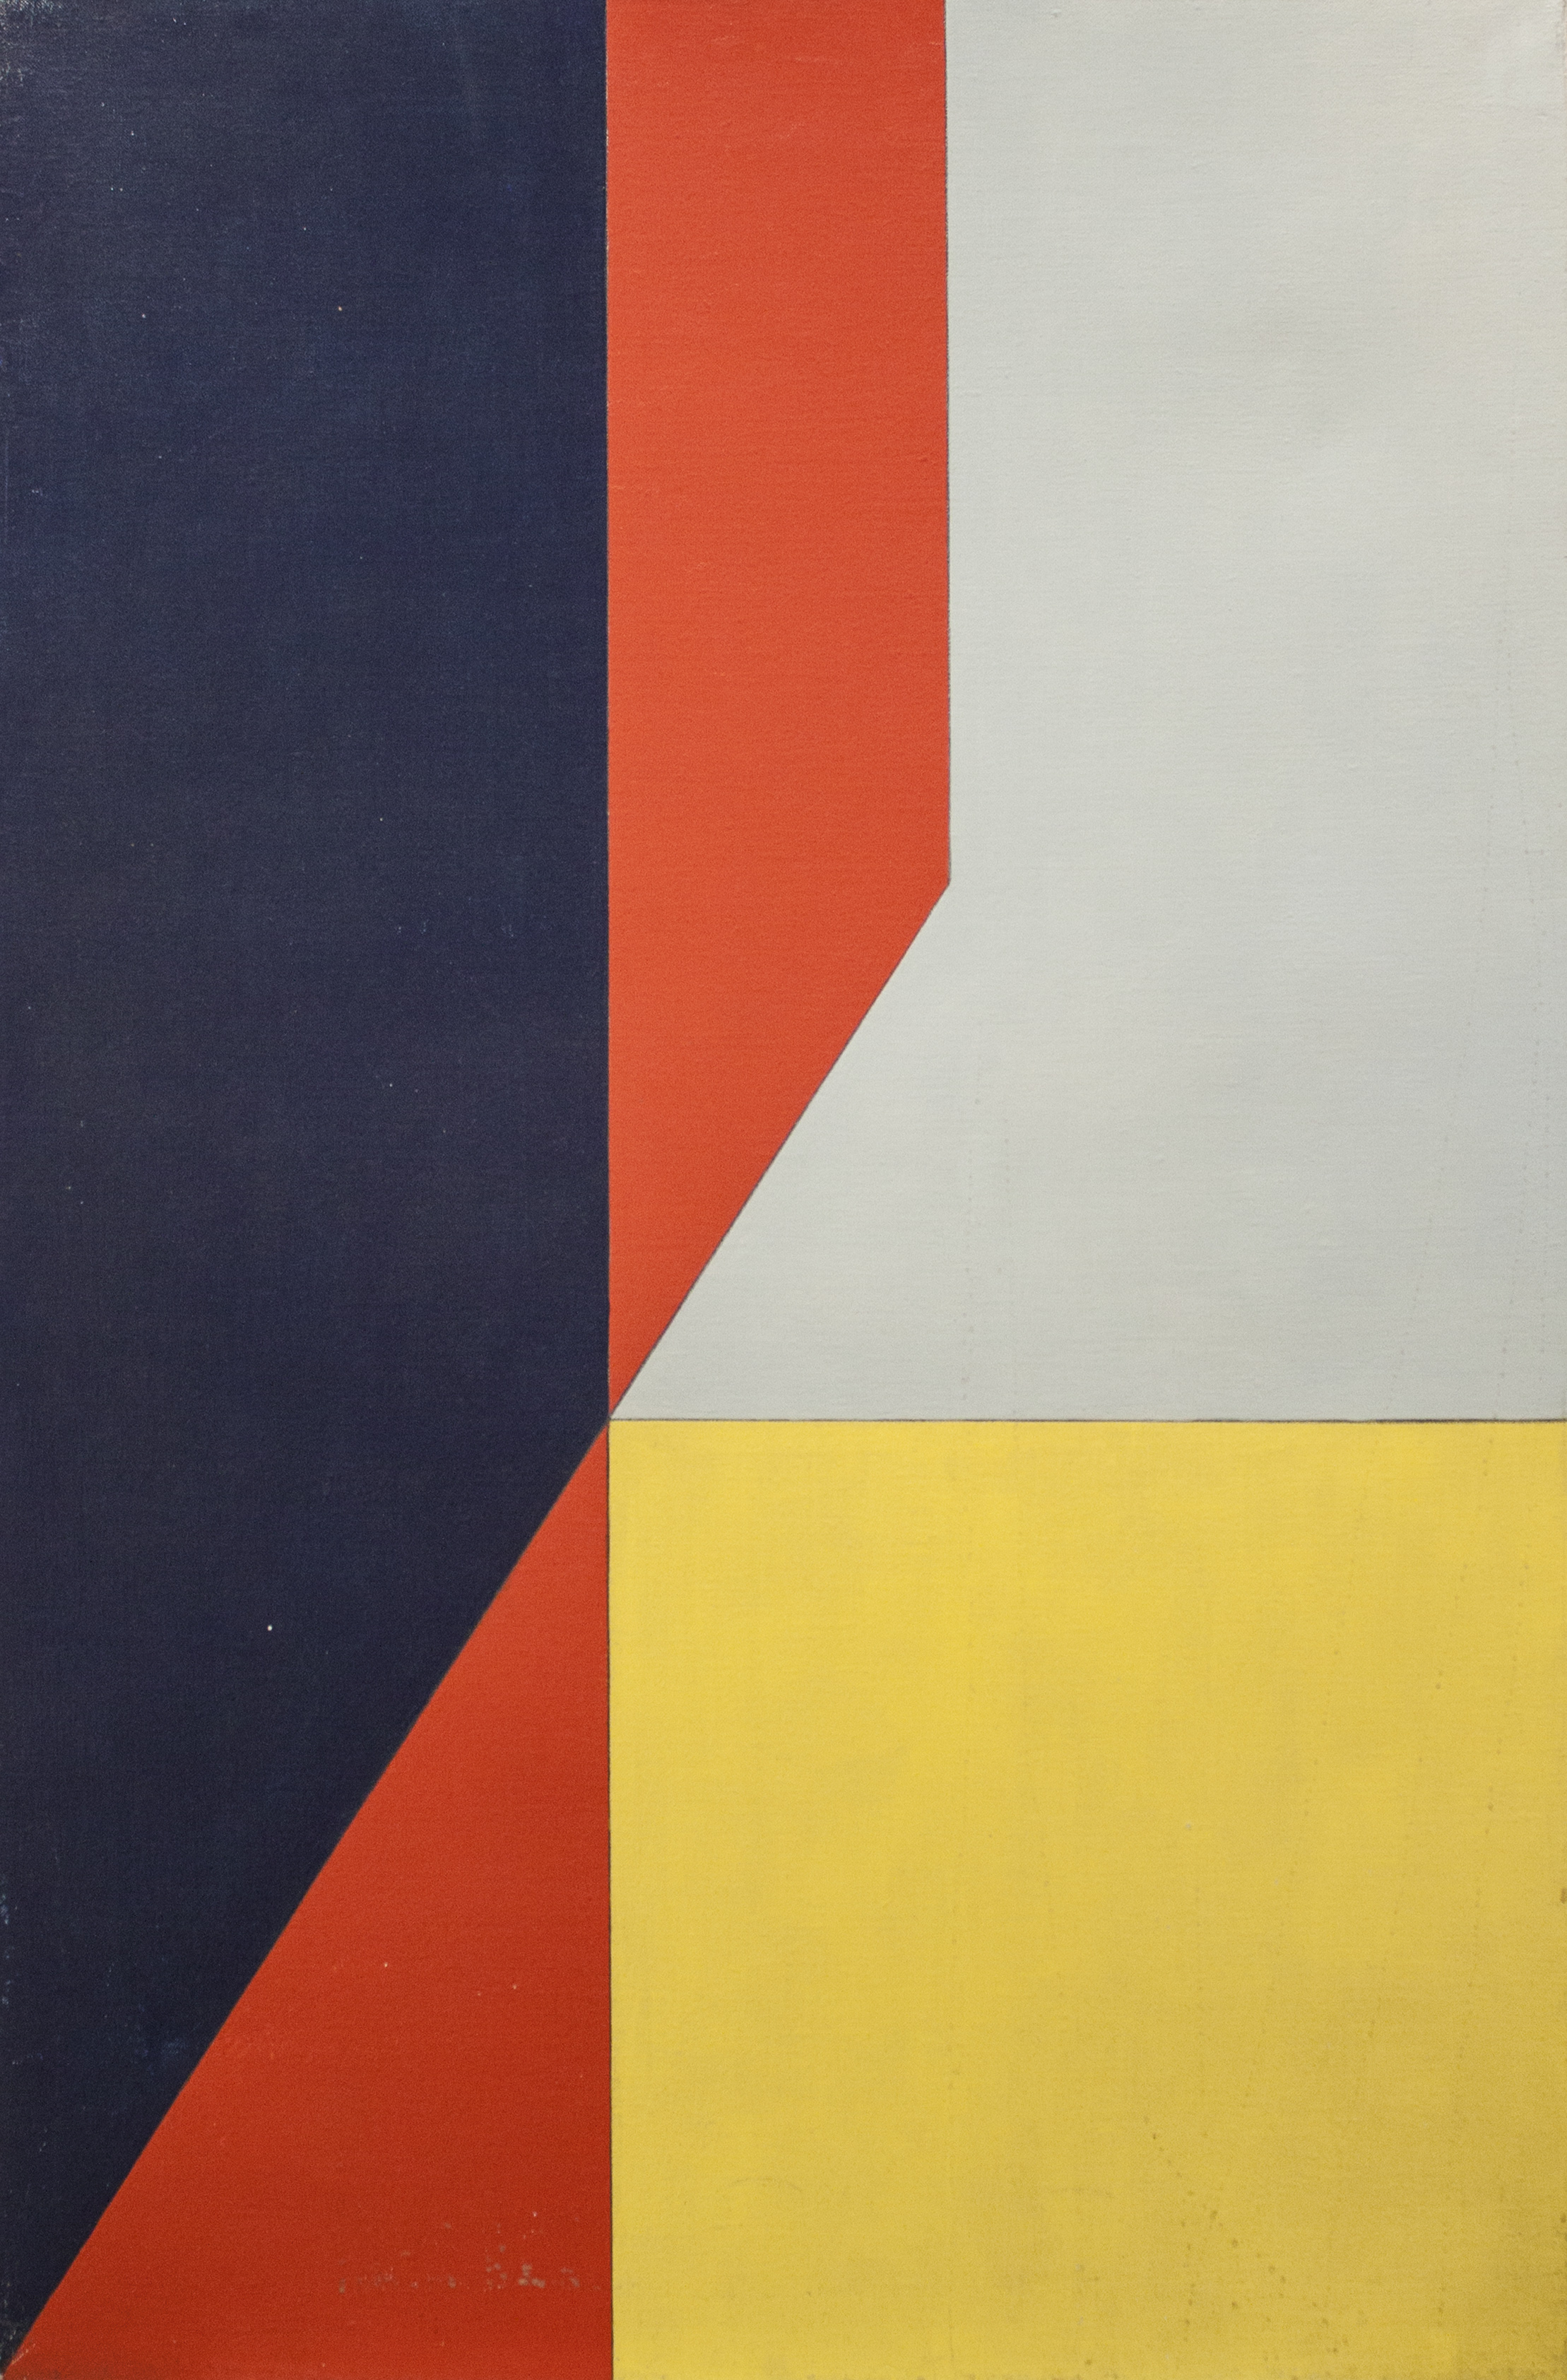 Jeremy Gilbert-Rolfe   Untitled , 1981 oil on linen 42 x 28 inches; 106.7 x 71.1 centimeters